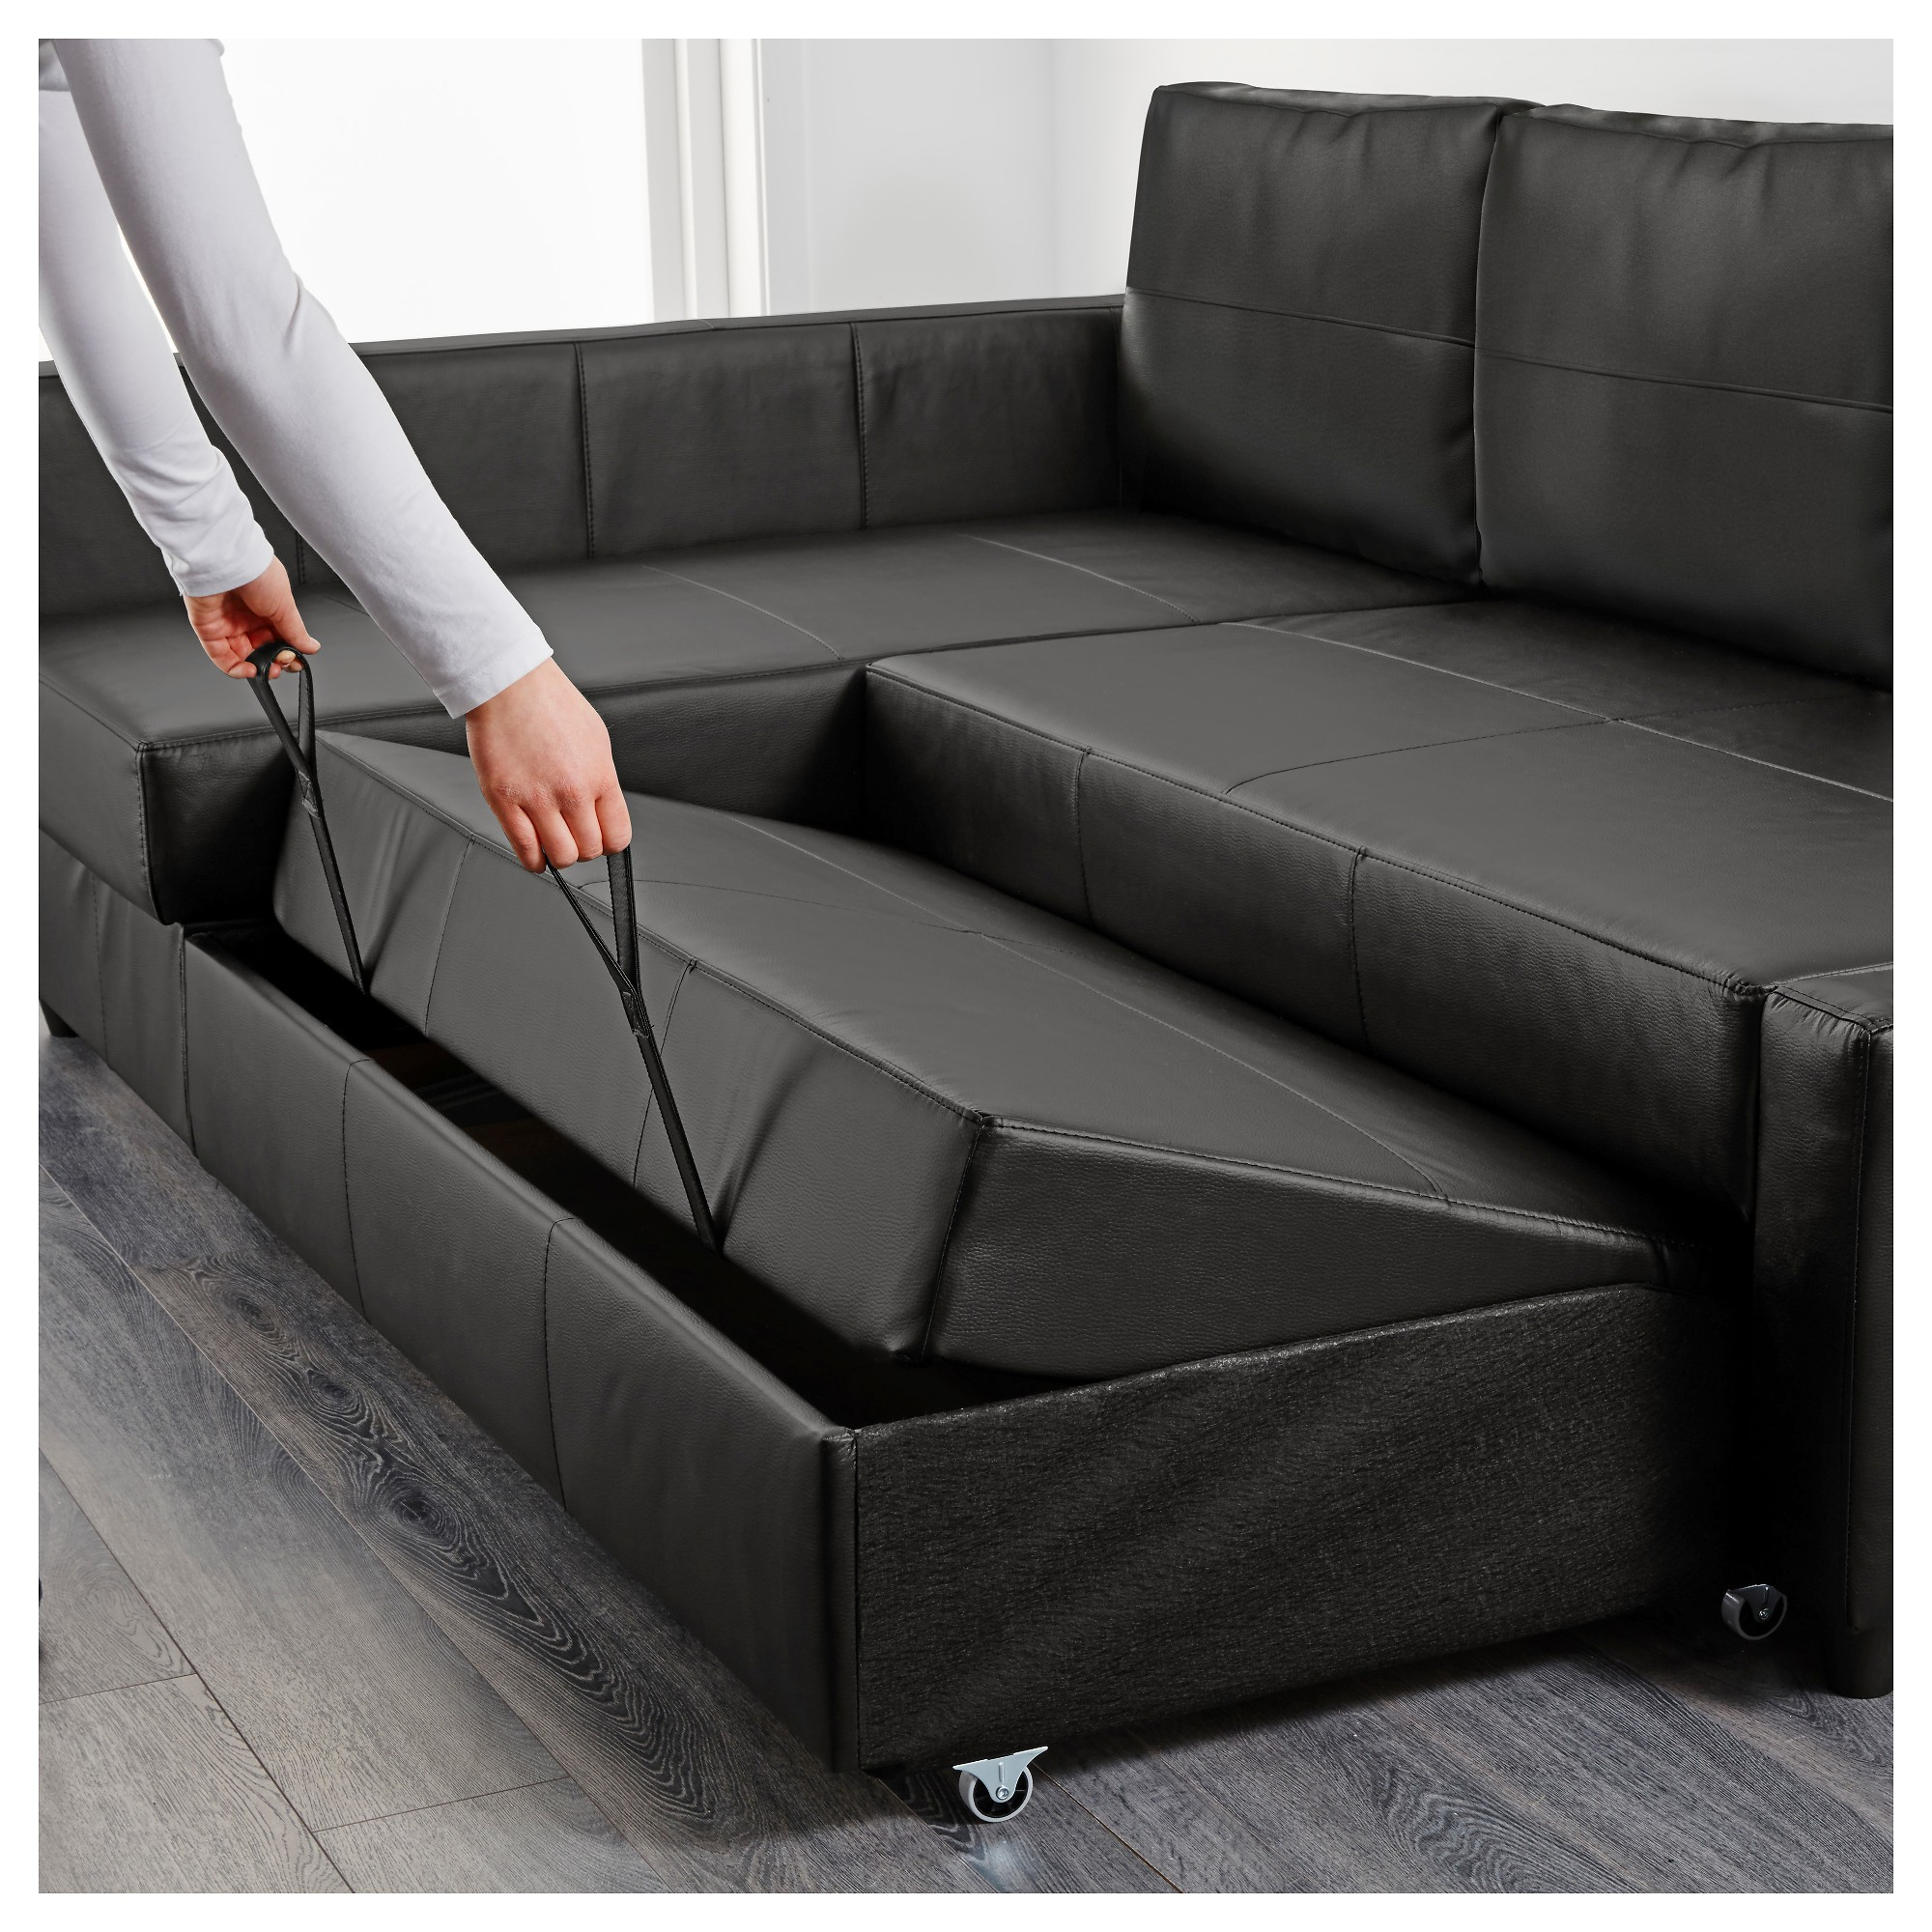 Sofa Bed with Storage Fancy Friheten Corner sofa Bed with Storage Skiftebo Dark Gray Ikea Inspiration